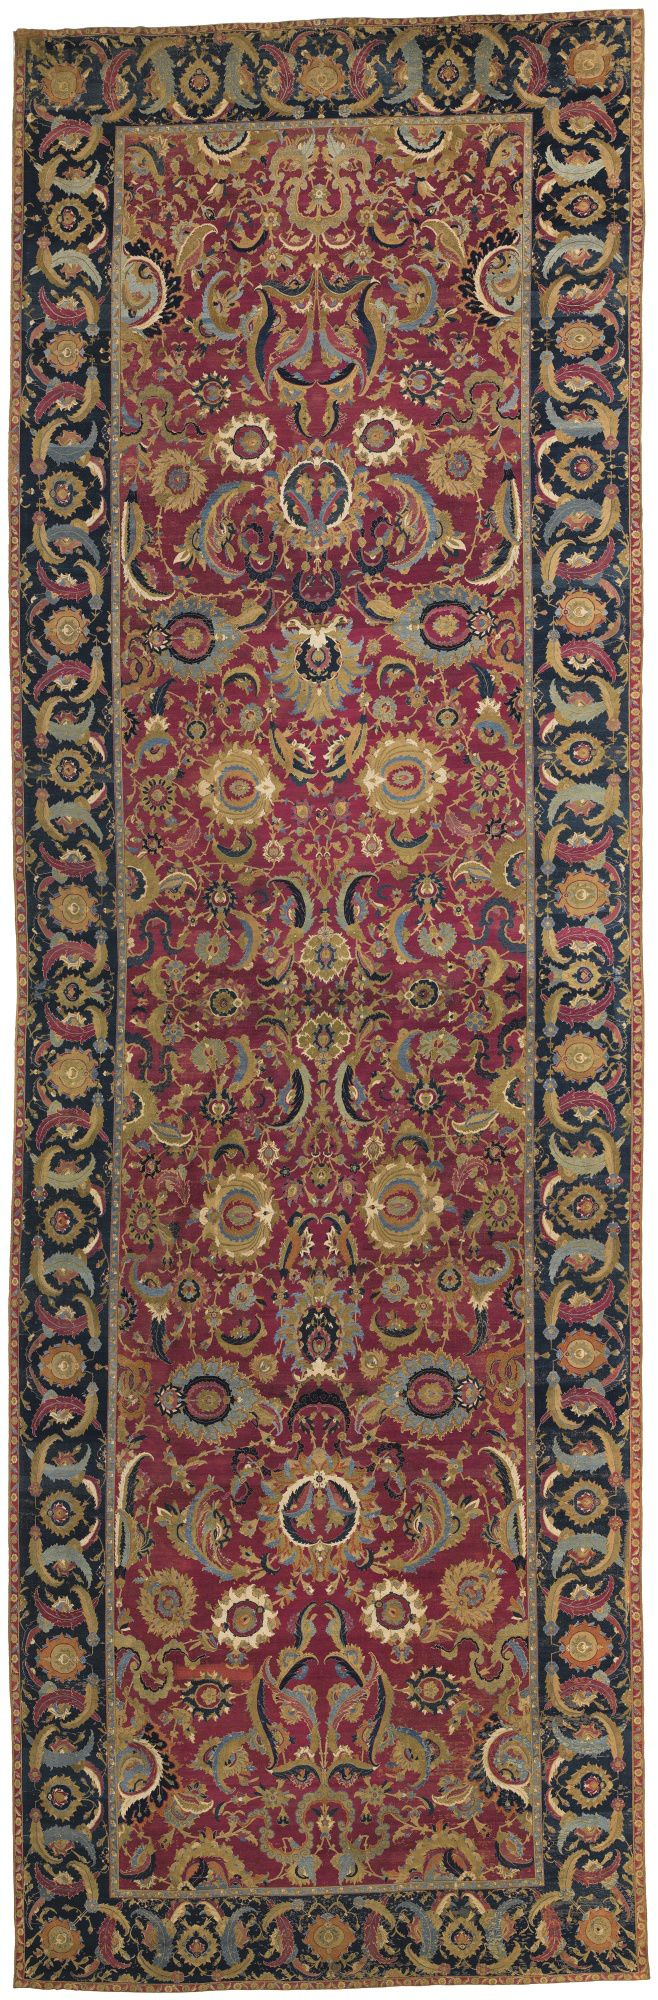 The most expensive Isfahan rug ever sold for $4.65m